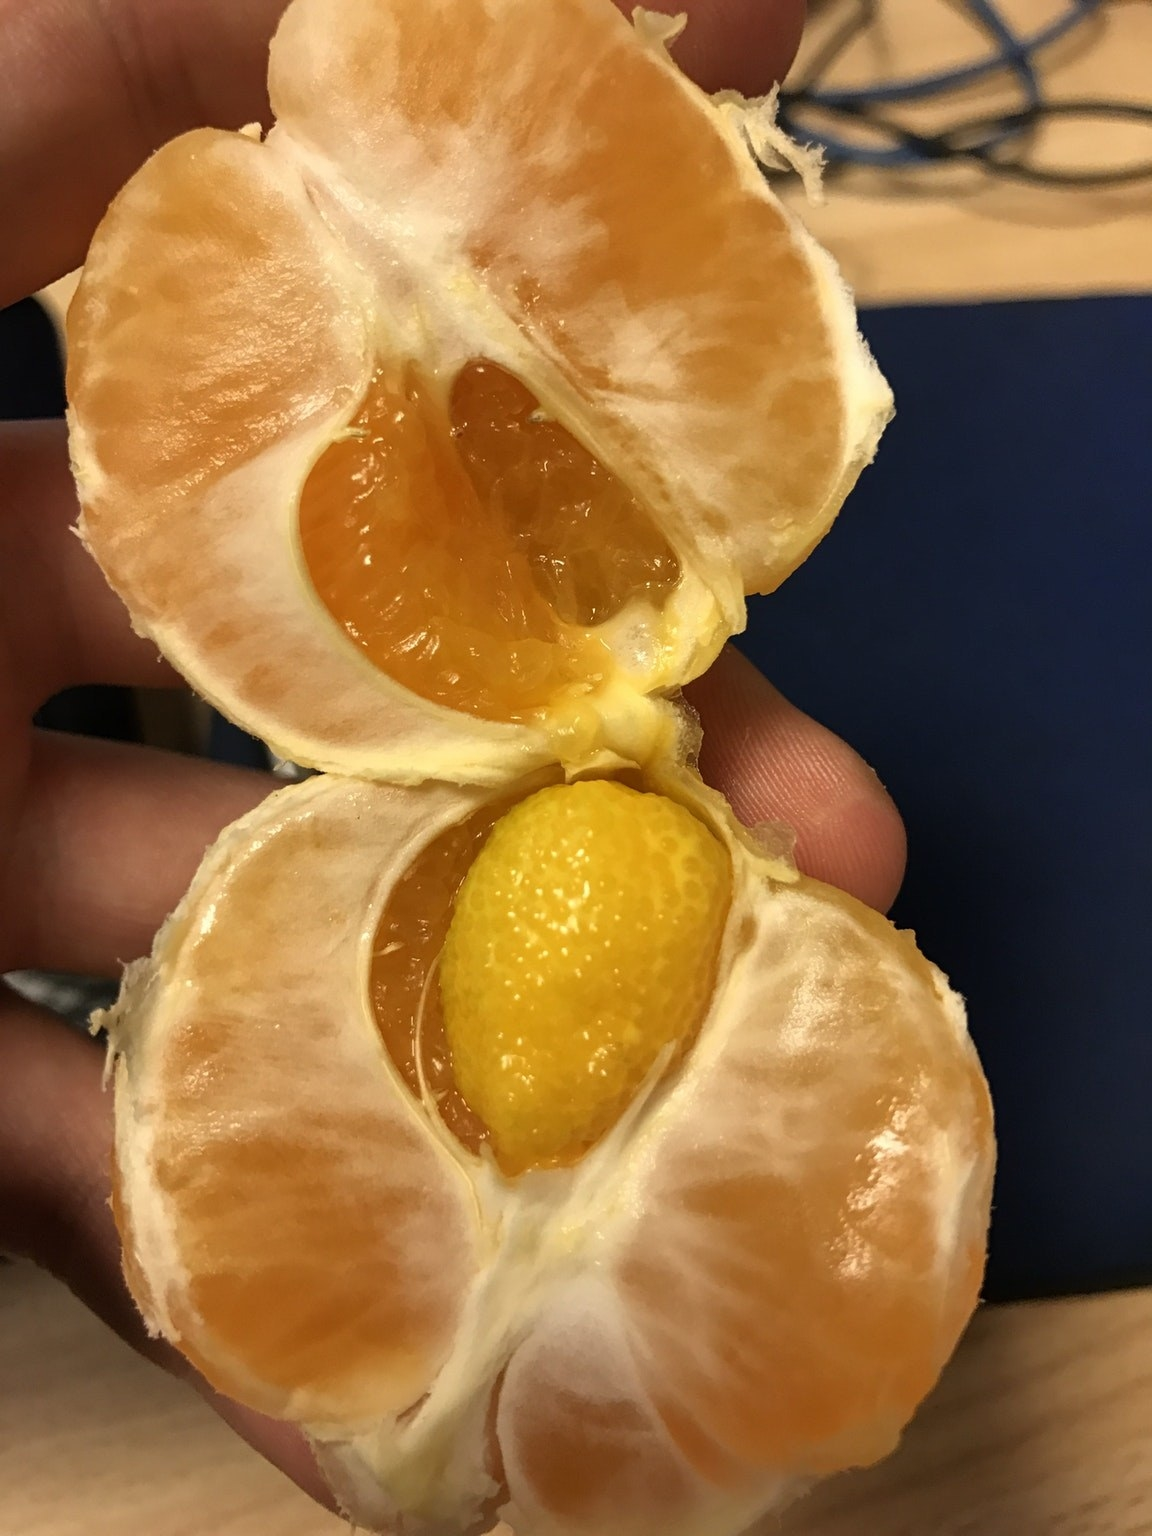 Funny fruits - Orange within Orange